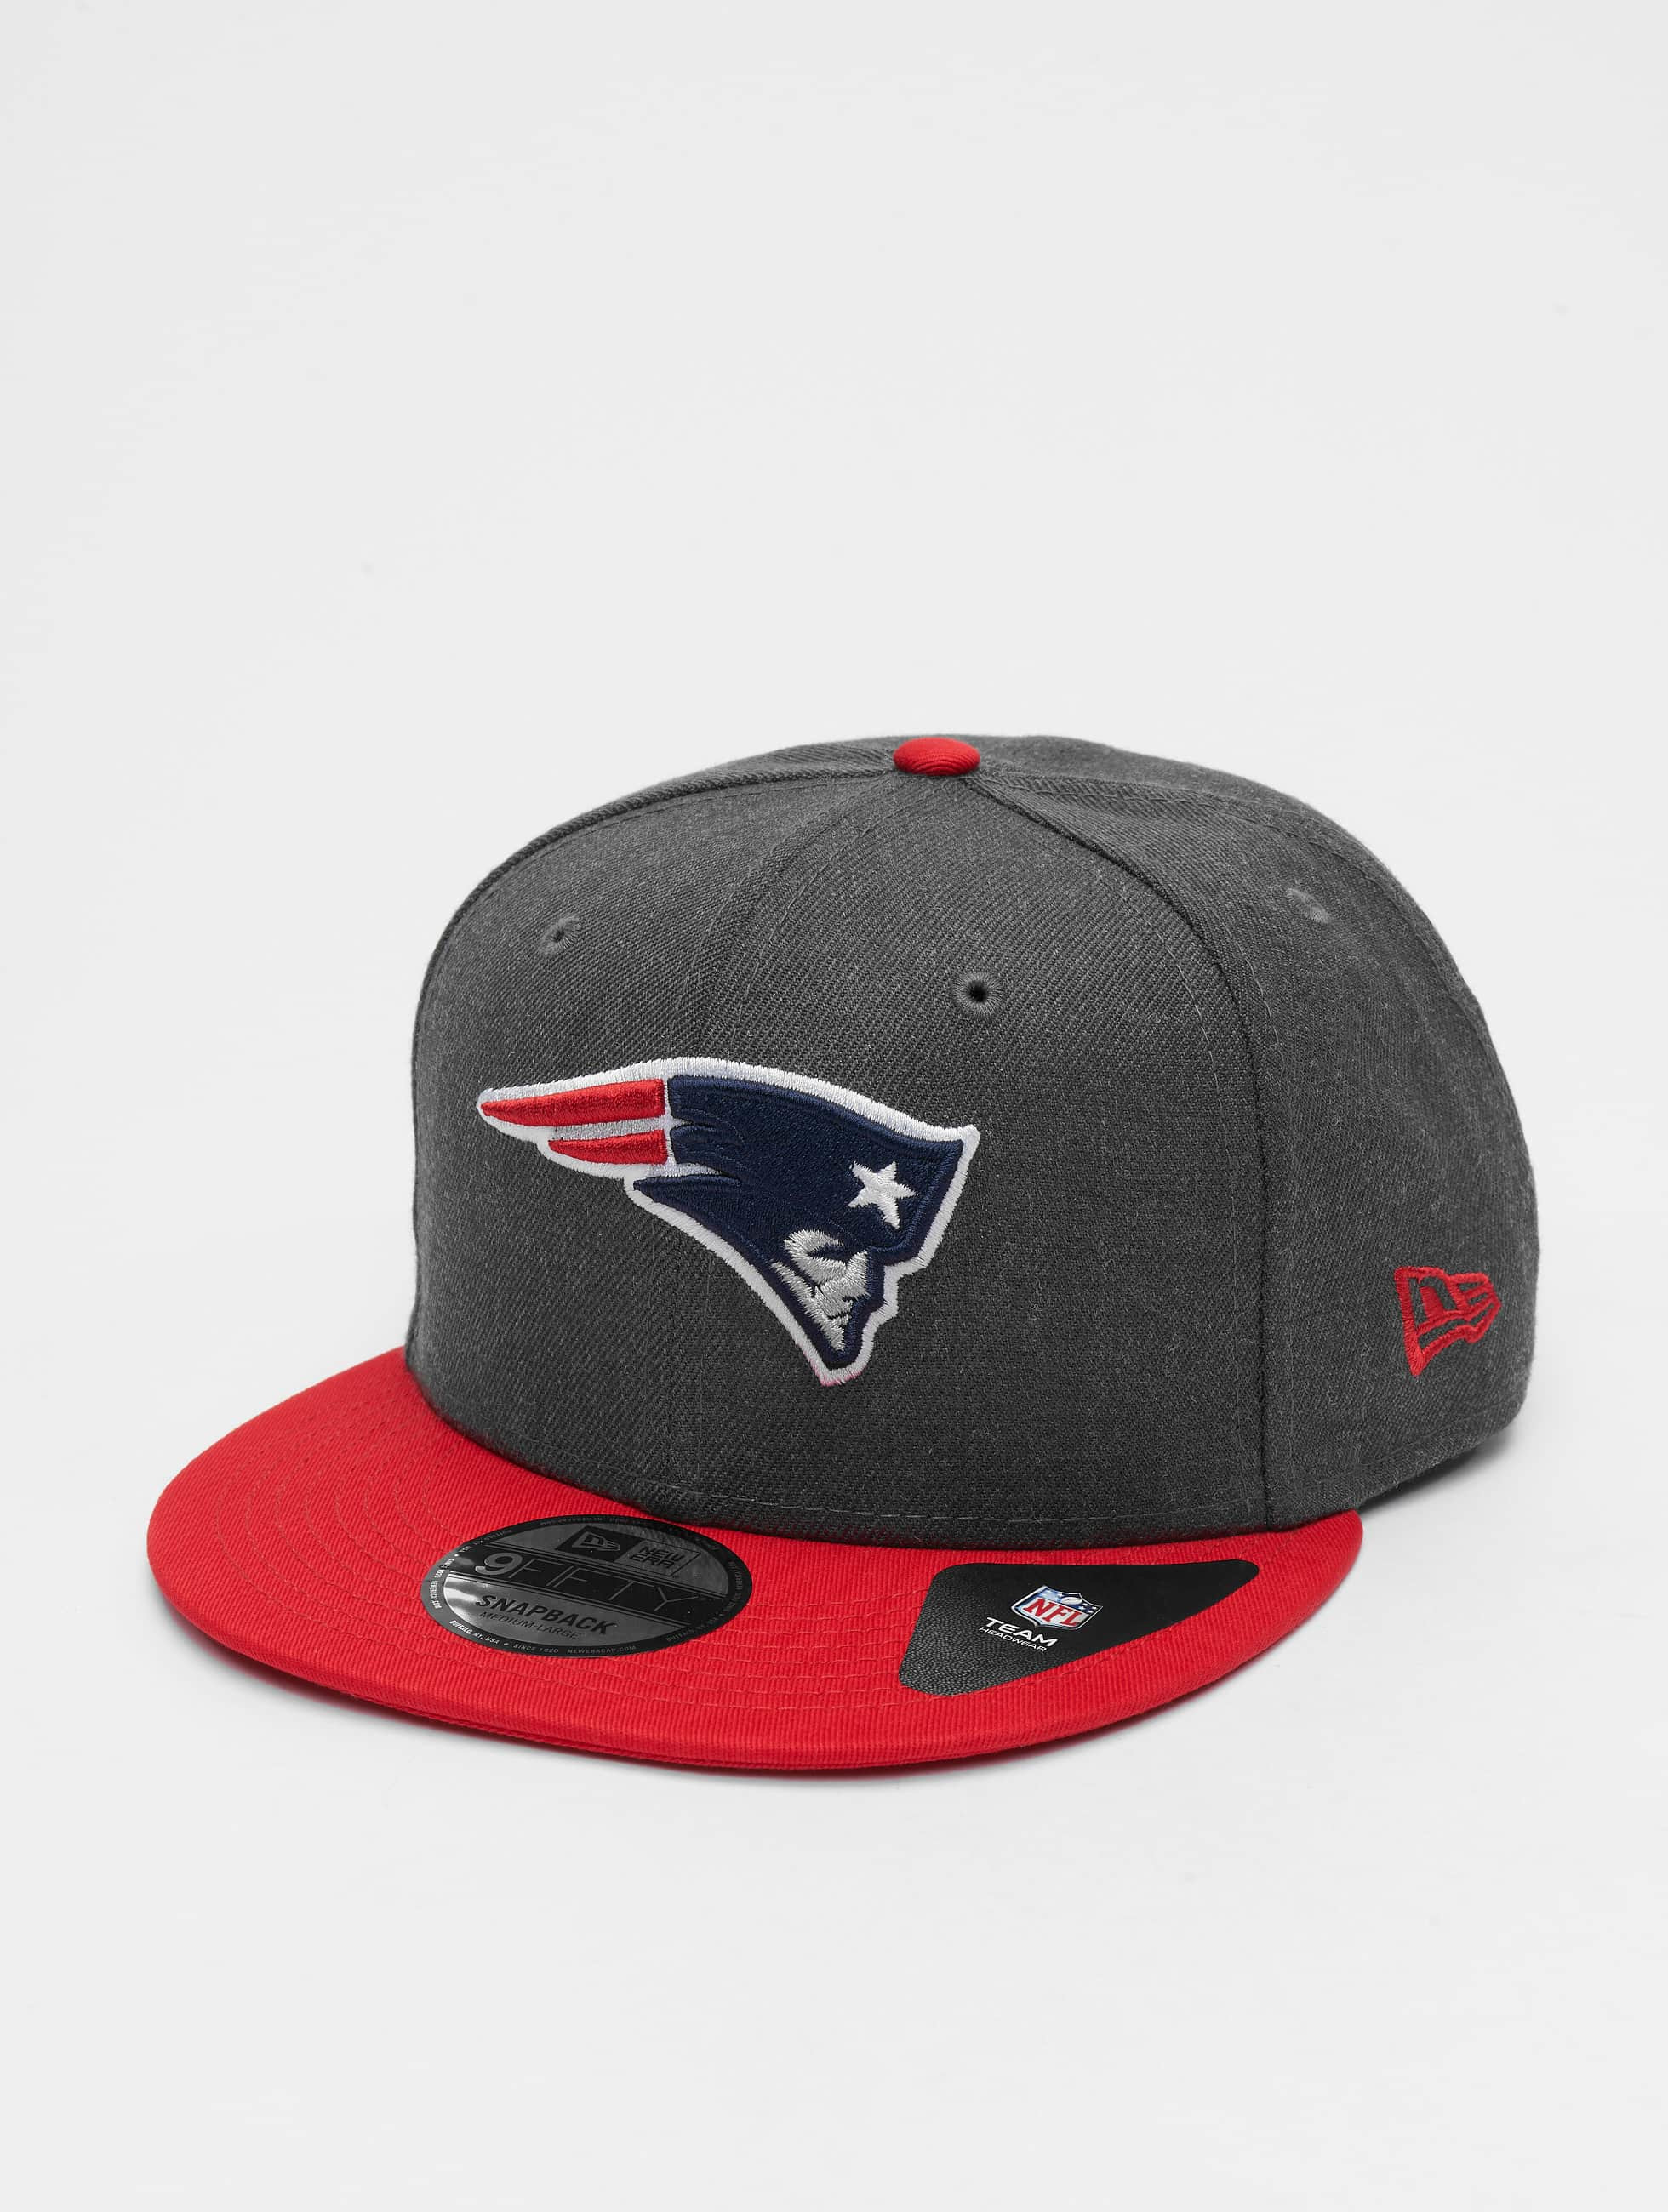 New Era | NFL Heather New England Patriots 9Fifty gris Homme,Femme Casquette Snapback & Strapback